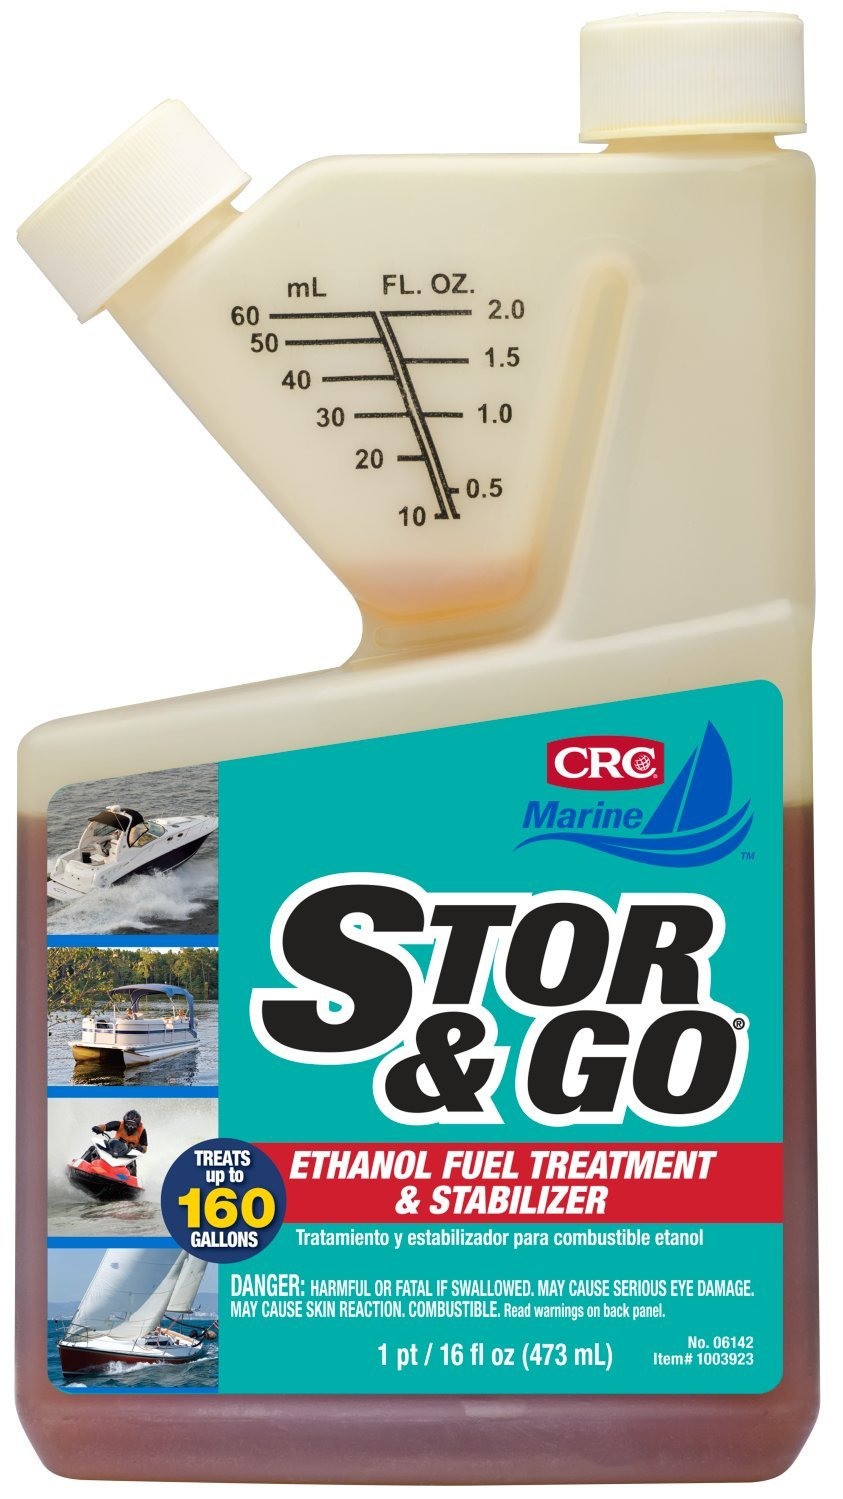 CRC 06142 STOR & GO Ethanol Fuel Treatment & Stabilizer, 16 oz